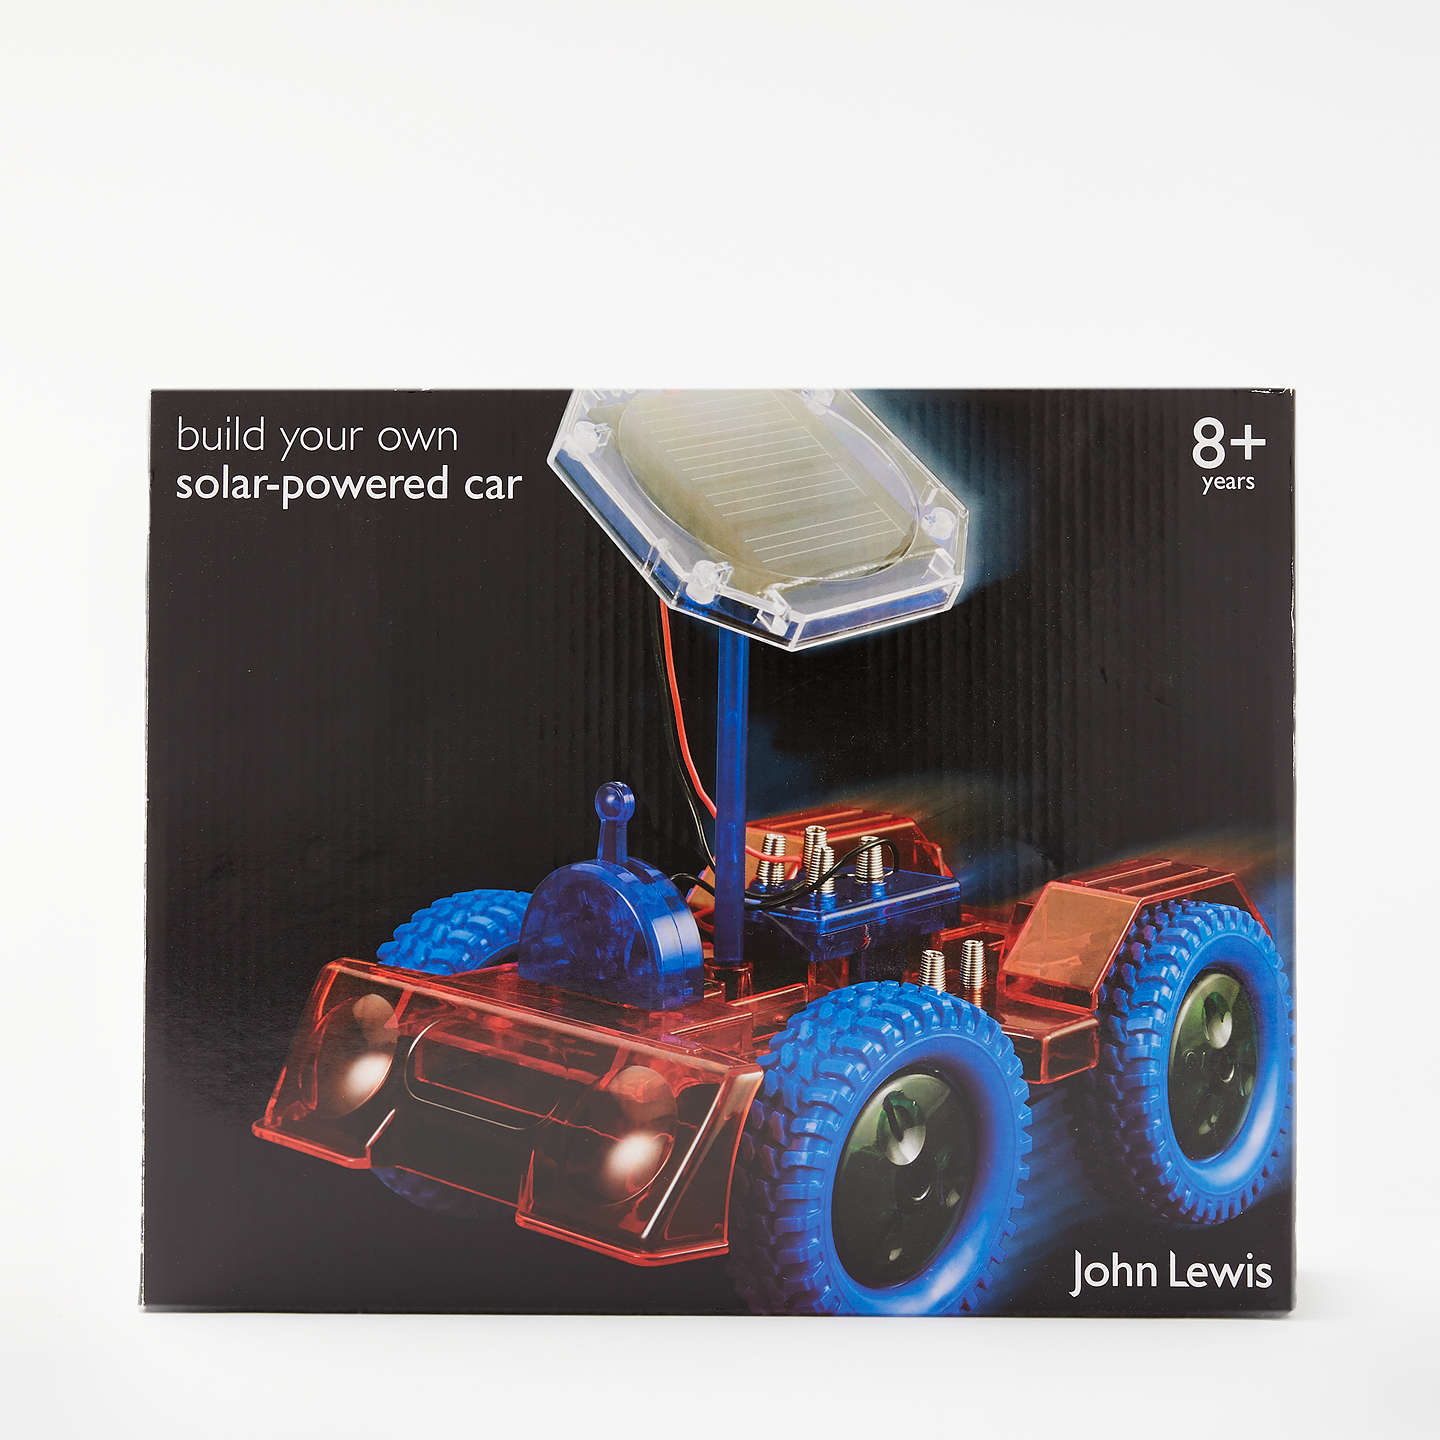 BuyJohn Lewis Build Your Own Solar-Powered Car Online at johnlewis.com